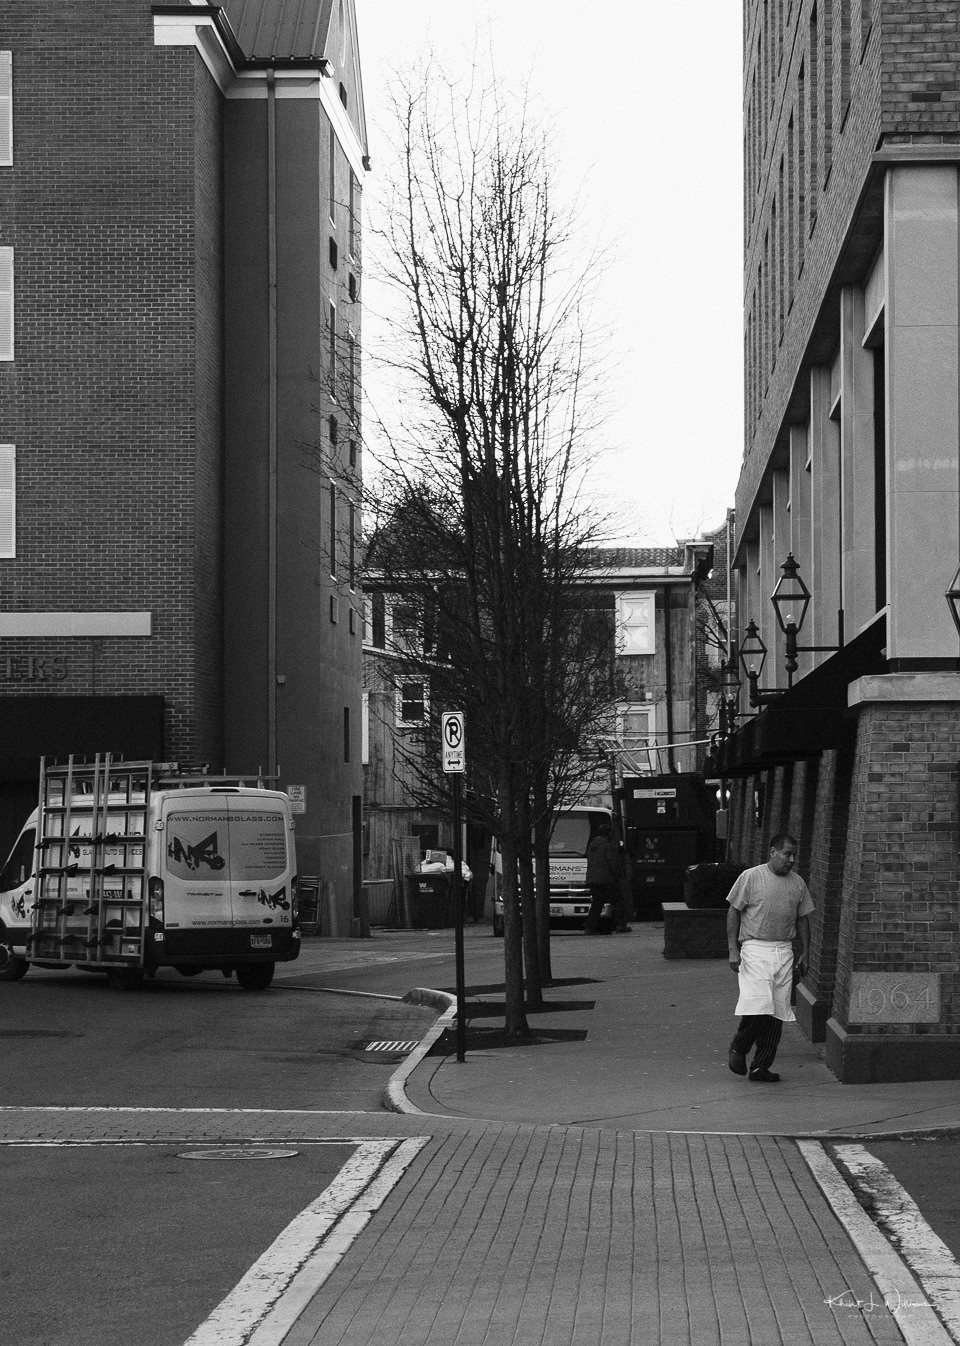 Man, Truck, Street, Buildings